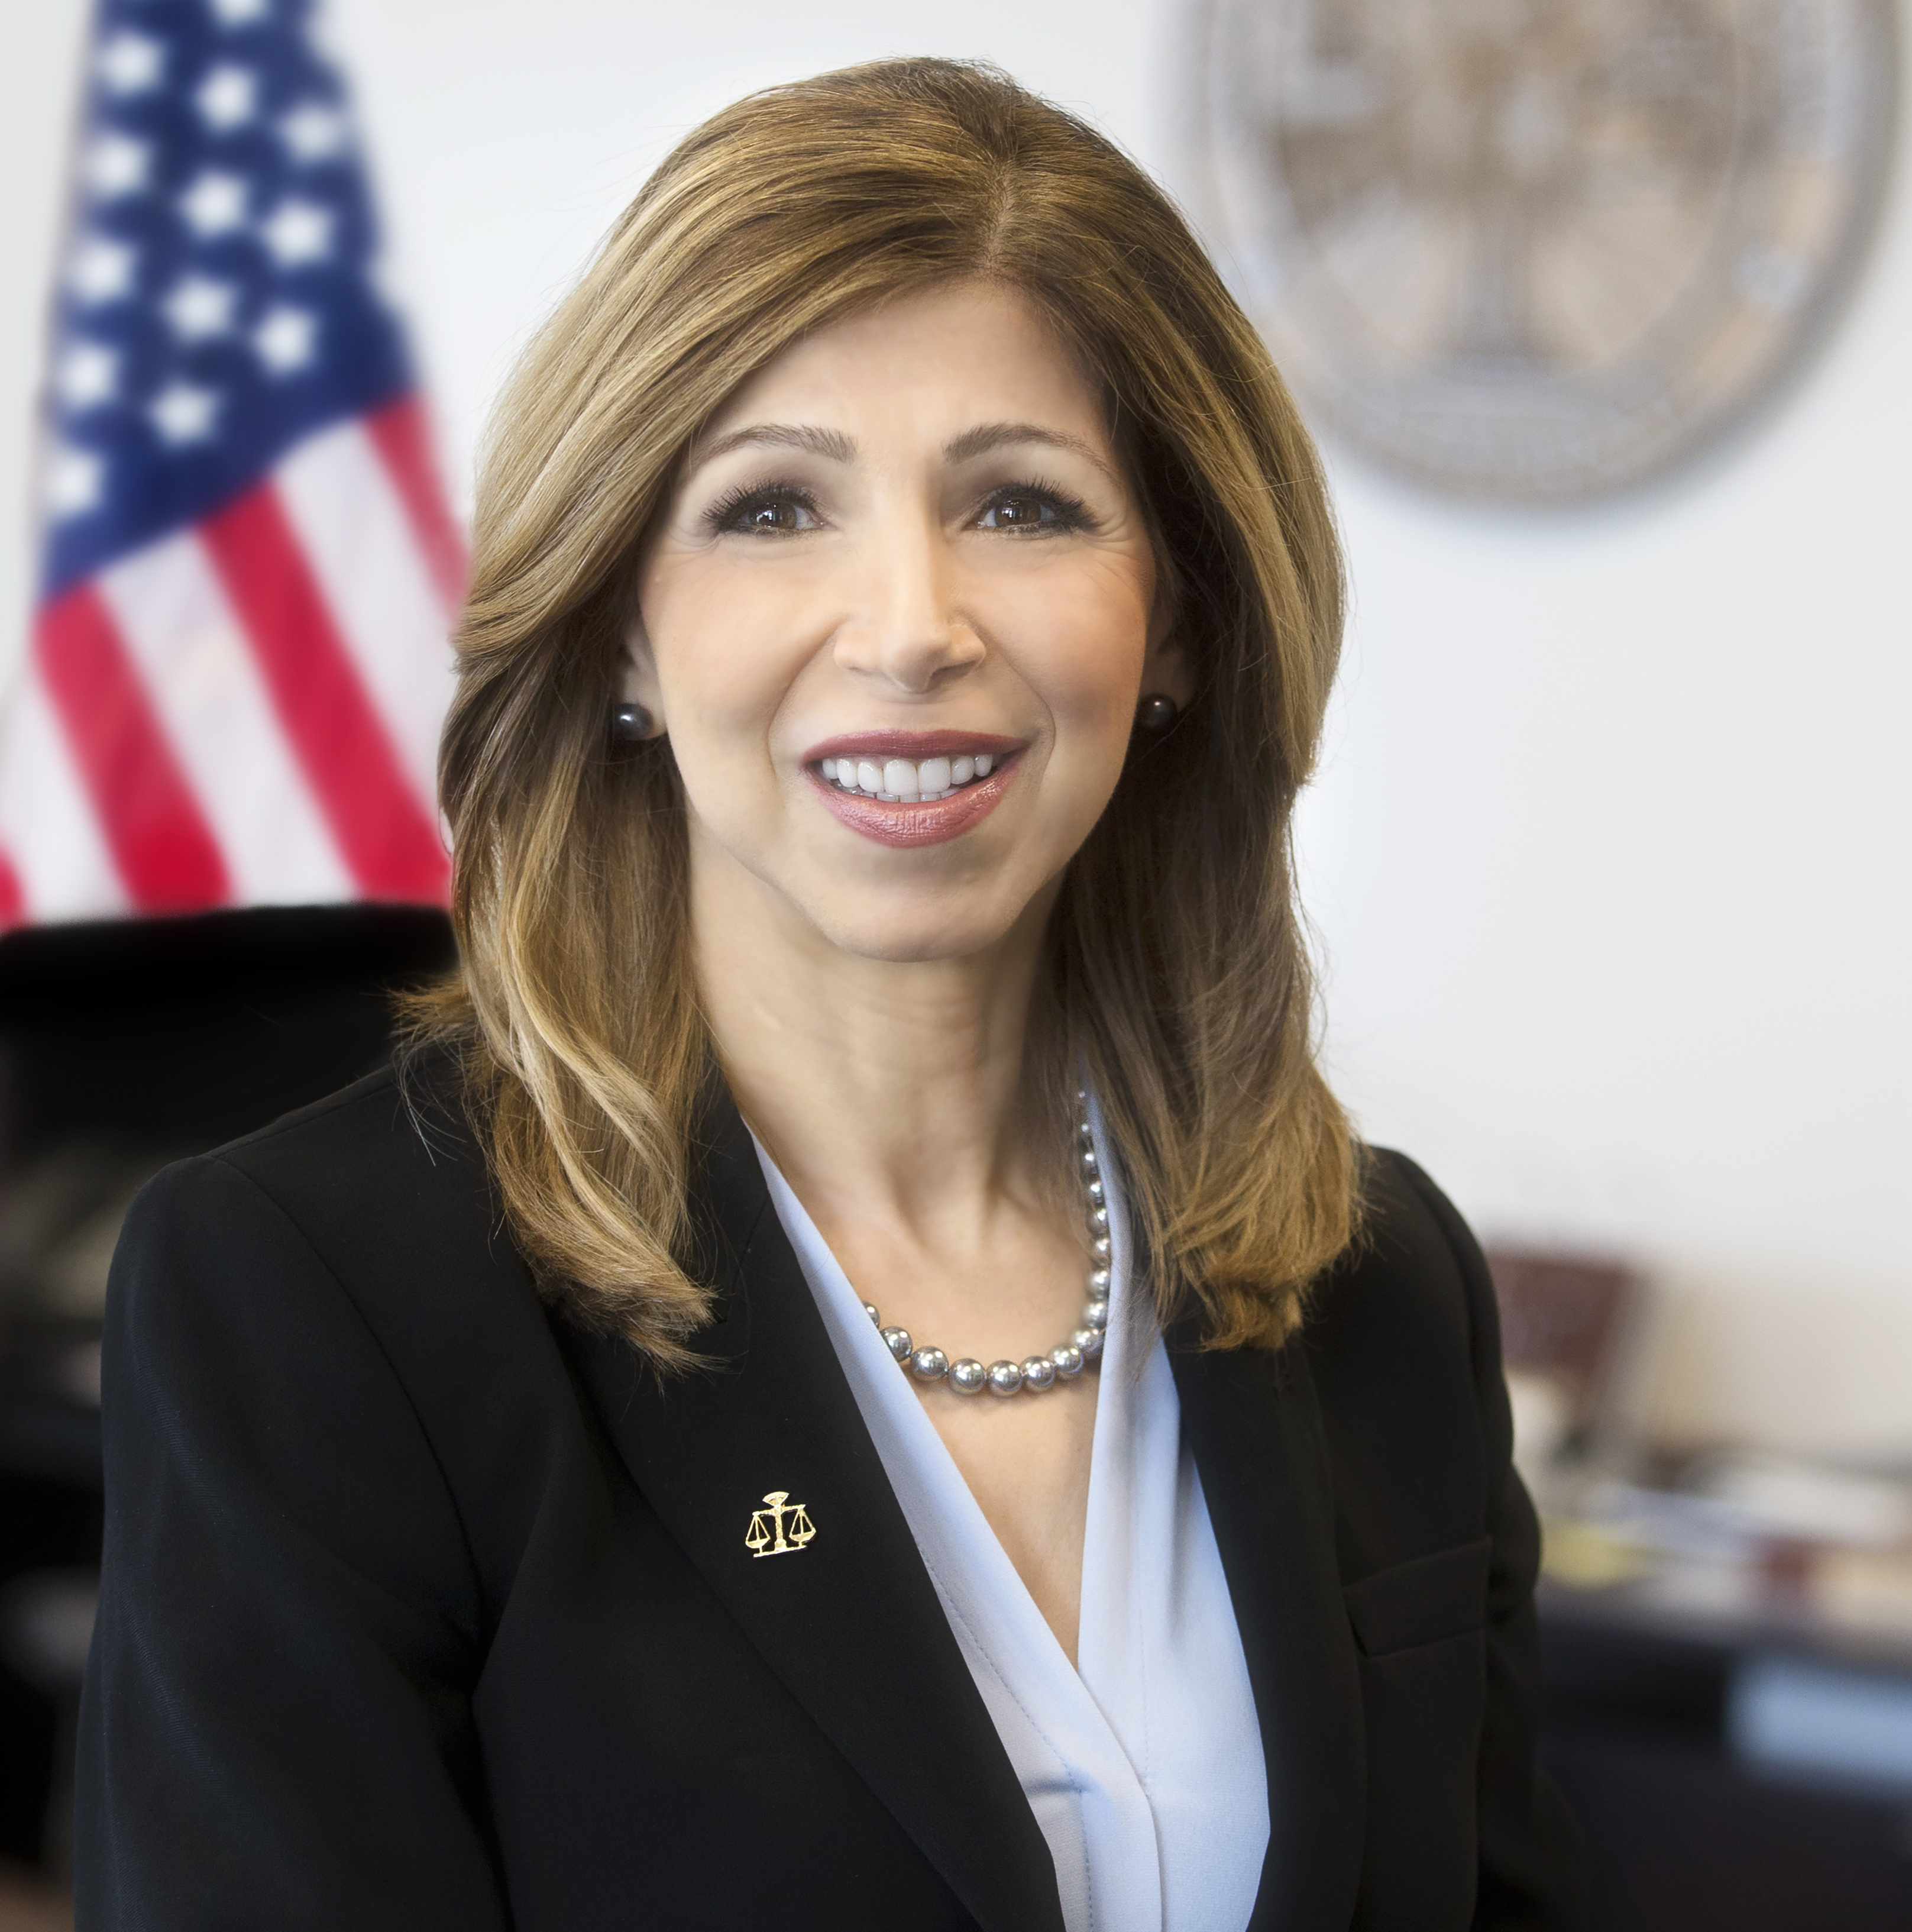 DA Summer Stephan Opens Up About her Career | La Prensa San Diego